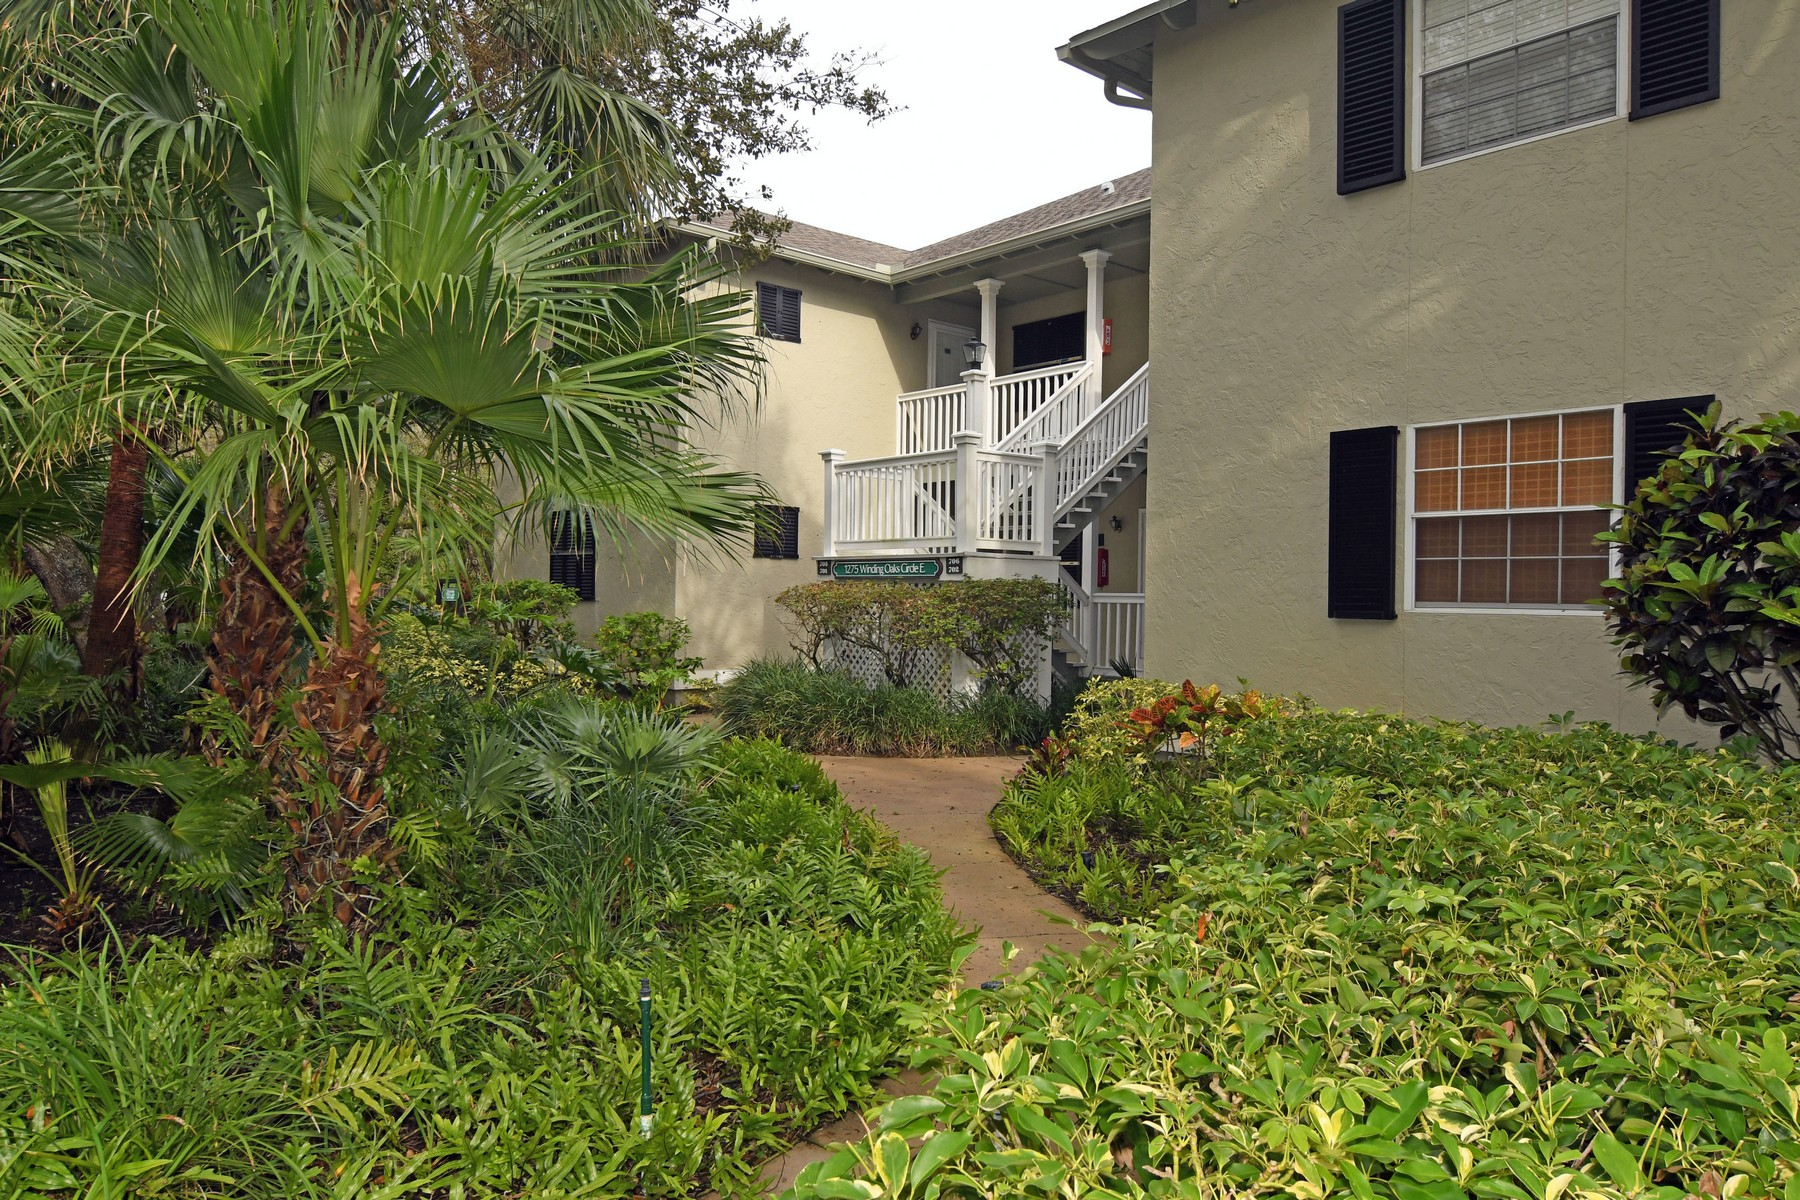 Condominium for Sale at Sea Oaks Tennis Villa 1275 Winding Oaks Circle E #701, Vero Beach, Florida, 32963 United States